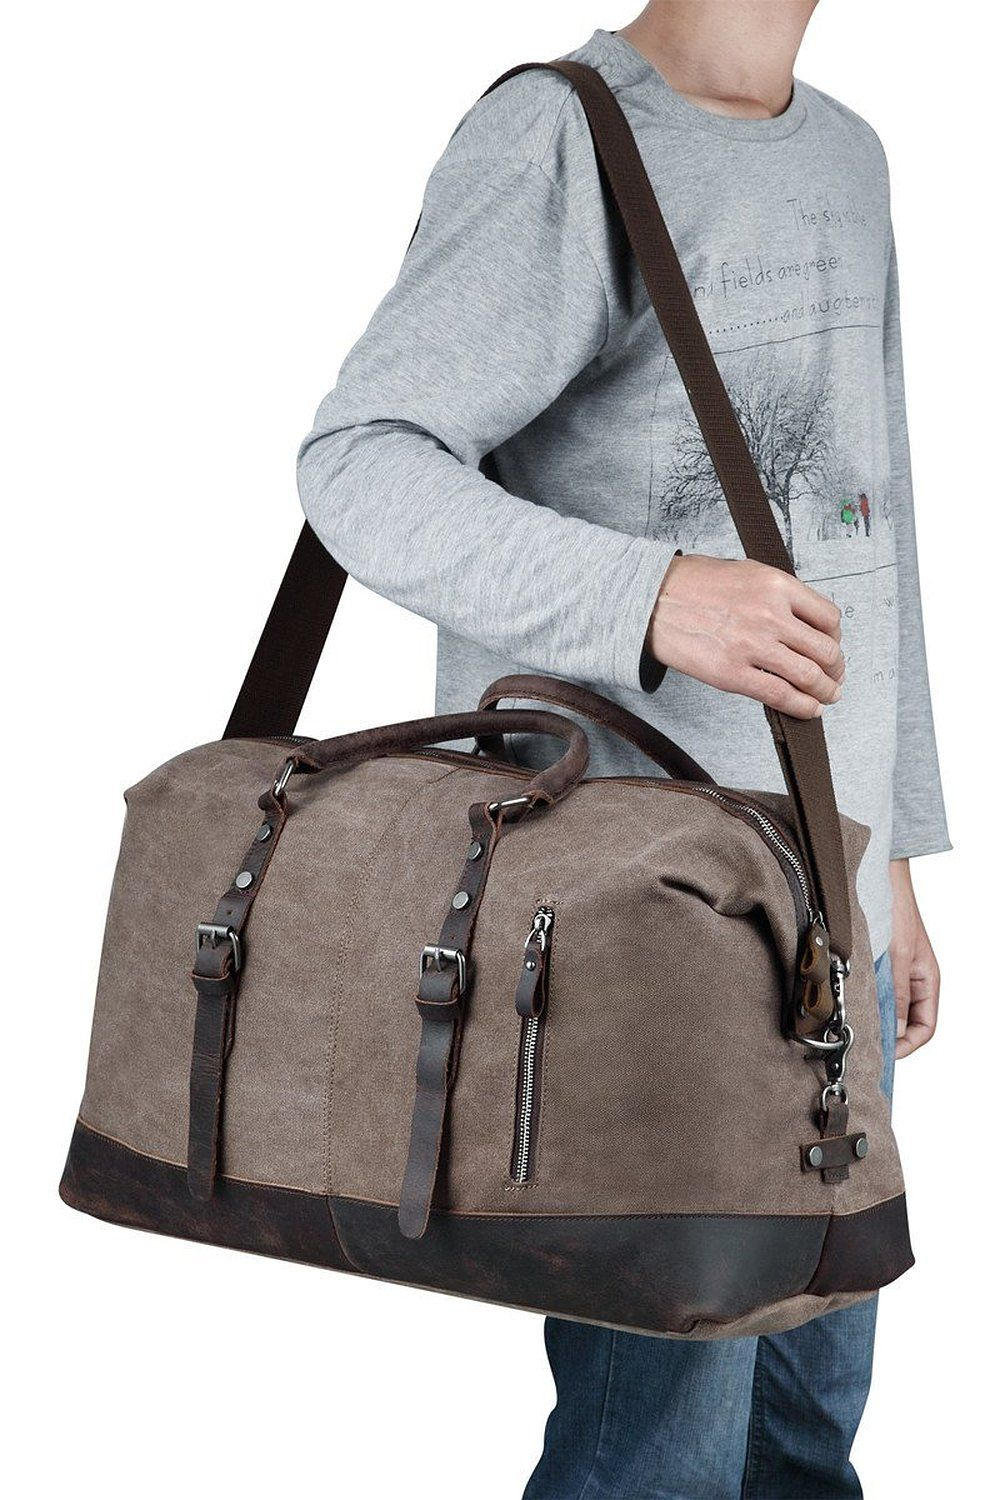 3148.2 69.99 (Free Ship) Amazon.com: BLUBOON Travel Duffel Bag ...